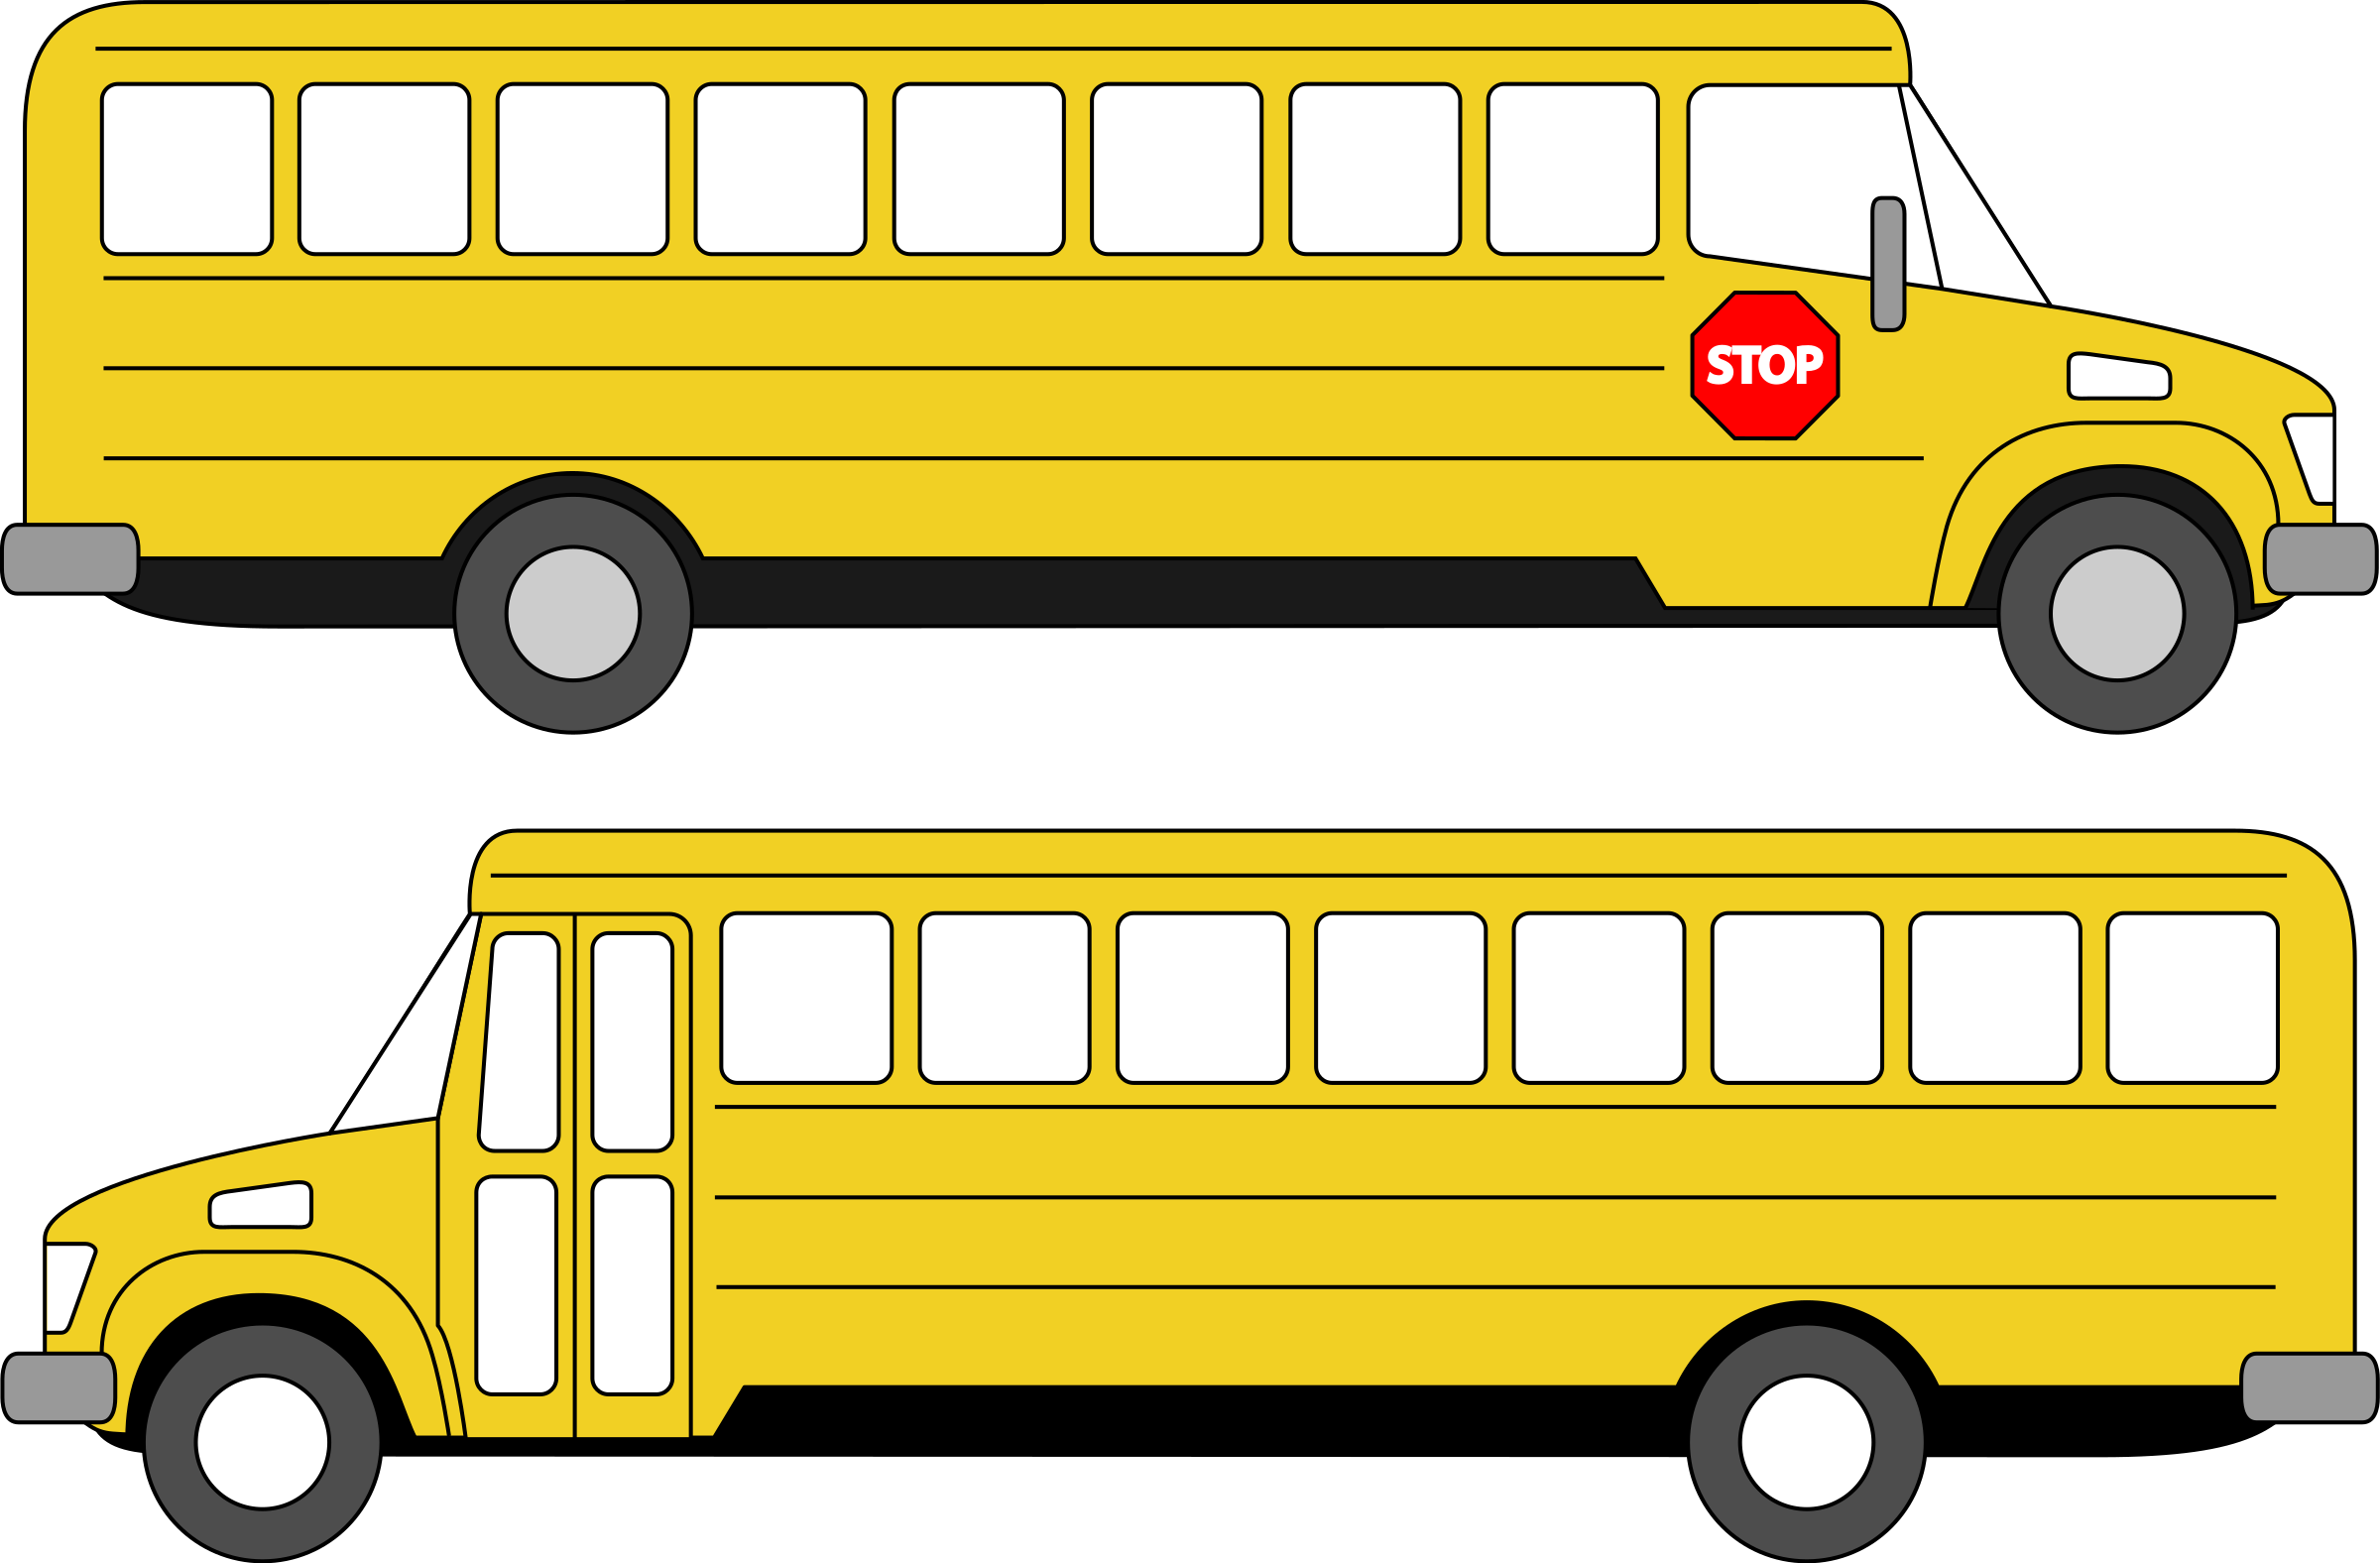 Clipart of school bus royalty free library Clipart - School bus royalty free library